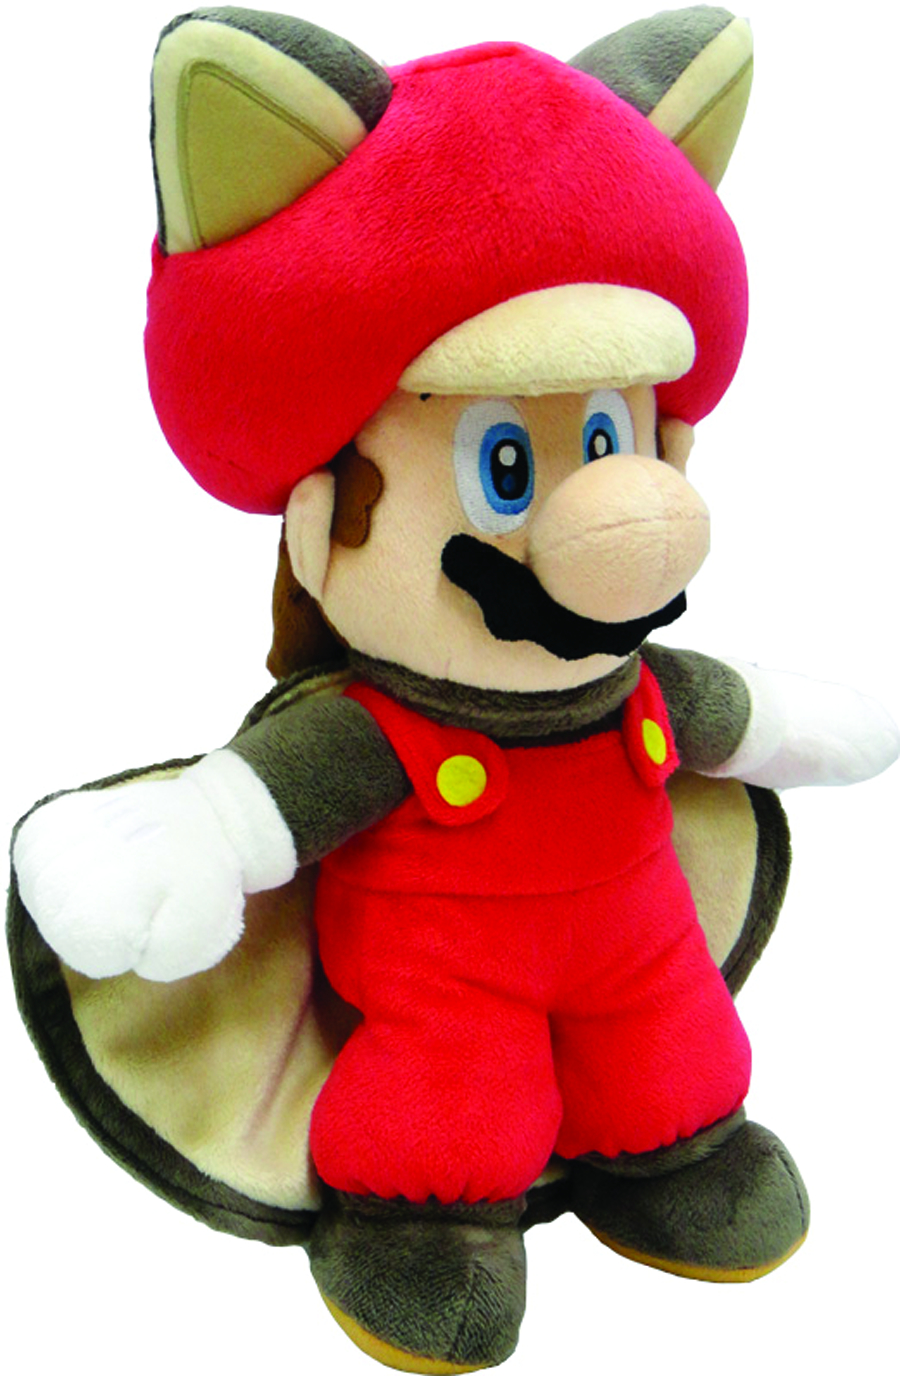 SUPER MARIO BROS FLYING SQUIRREL MARIO 14IN PLUSH